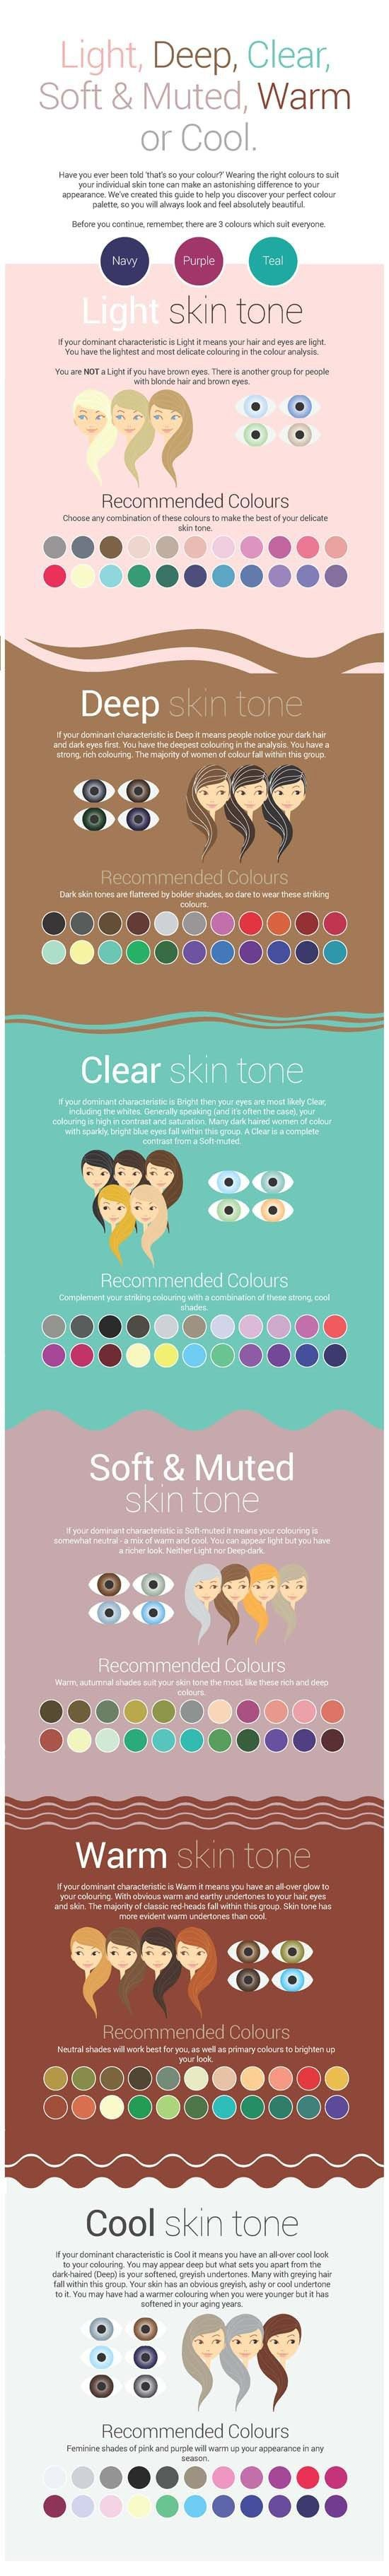 16 Beauty Hacks And Tips On How To Find The Right Makeup For Your